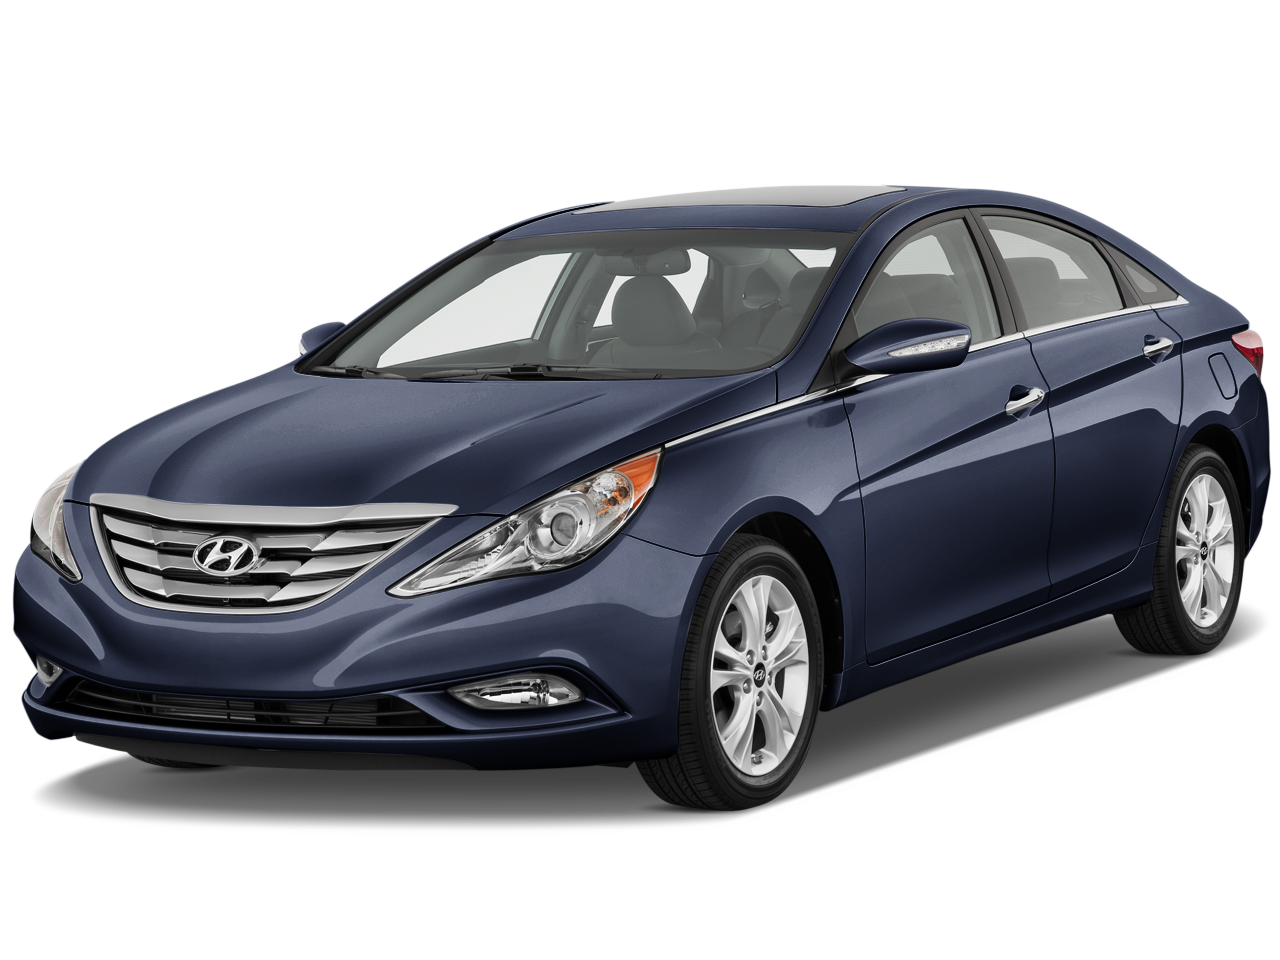 used certified 2014 hyundai sonata limited 2 0t near dearborn mi lafontaine toyota. Black Bedroom Furniture Sets. Home Design Ideas